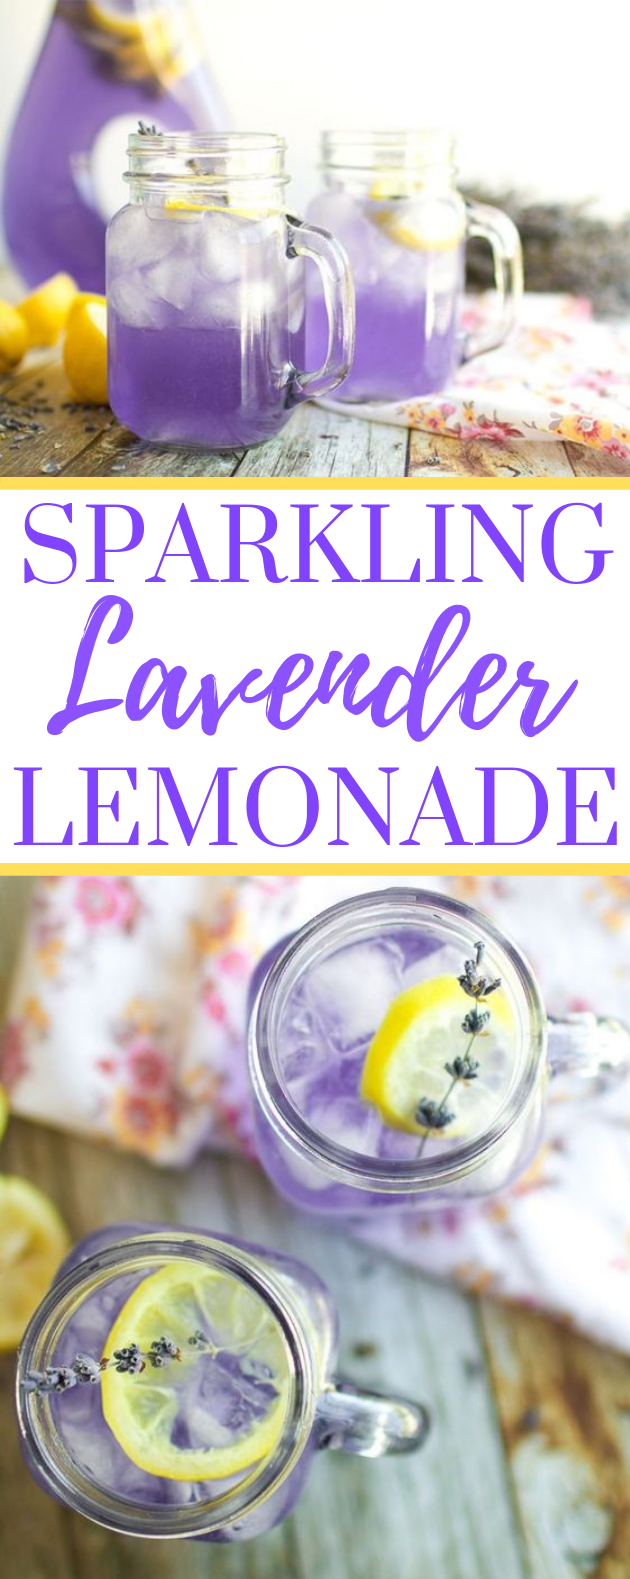 SPARKLING LAVENDER LEMONADE #drink #water